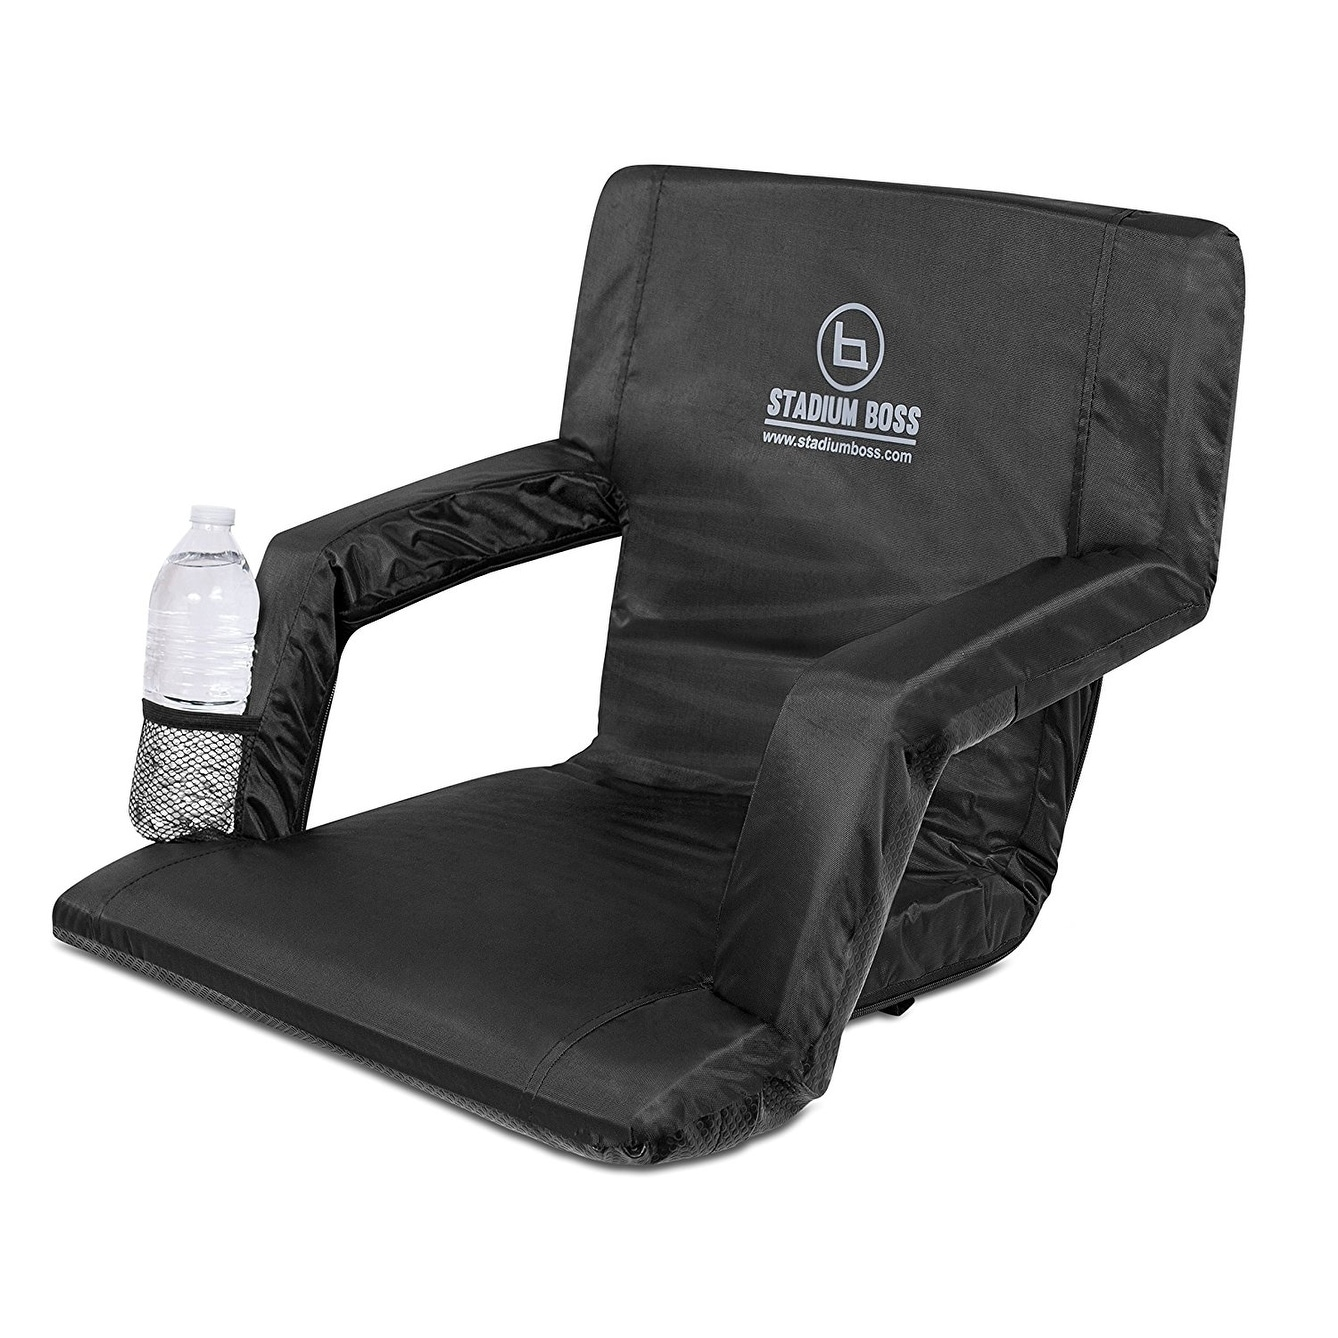 Wide Stadium Seats Chairs For Bleachers Or Benches Padded Cushion Backs Portable Sporting Goods Other Outdoor Sports